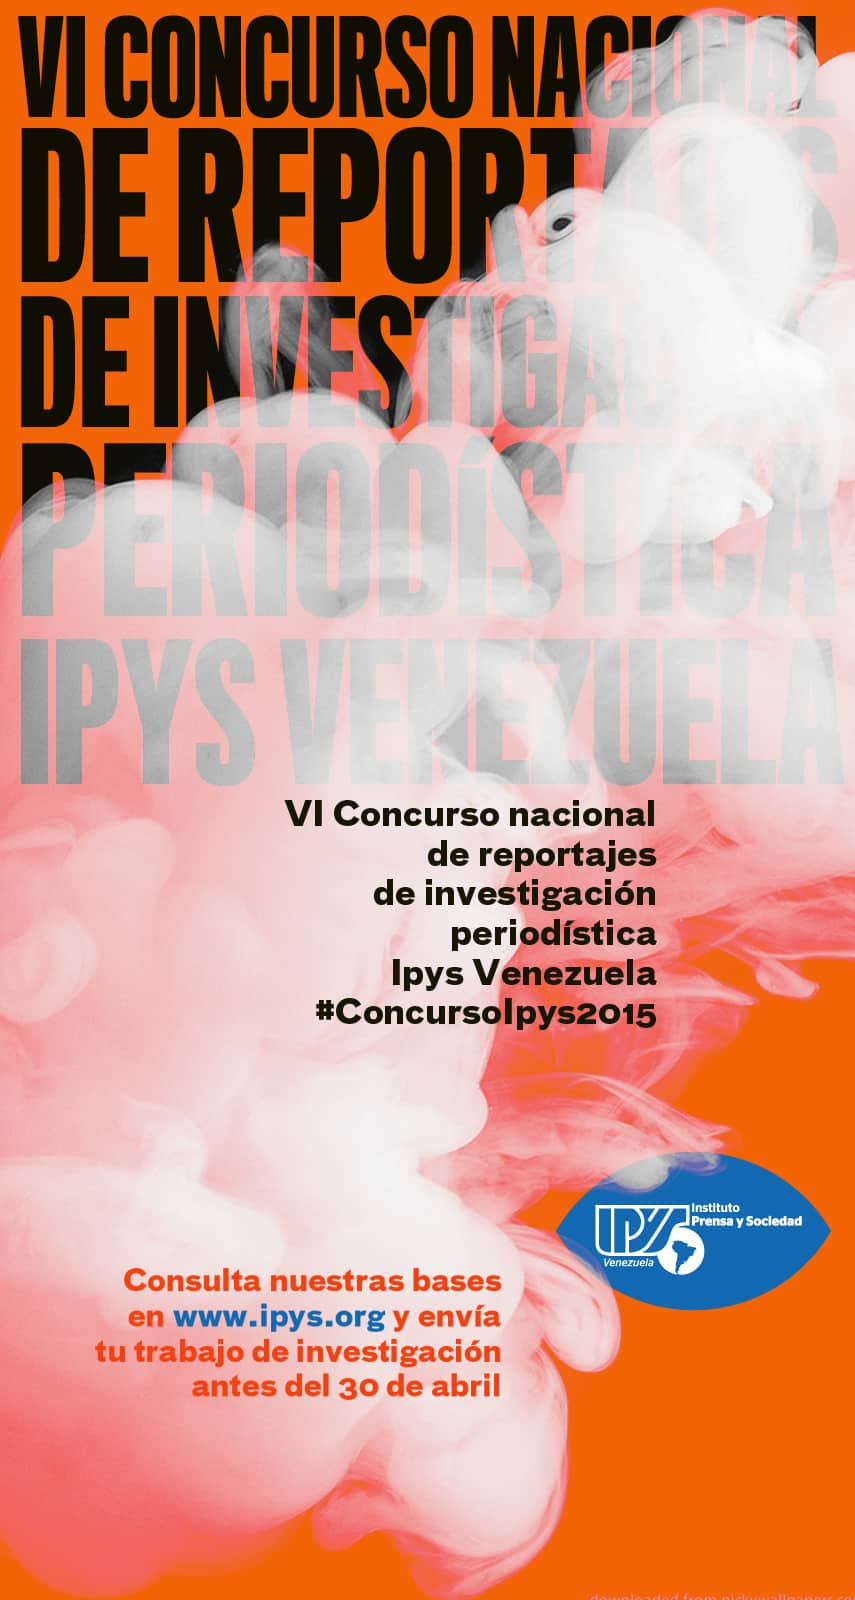 Ipys_CortinaHumo_Poster_Digital